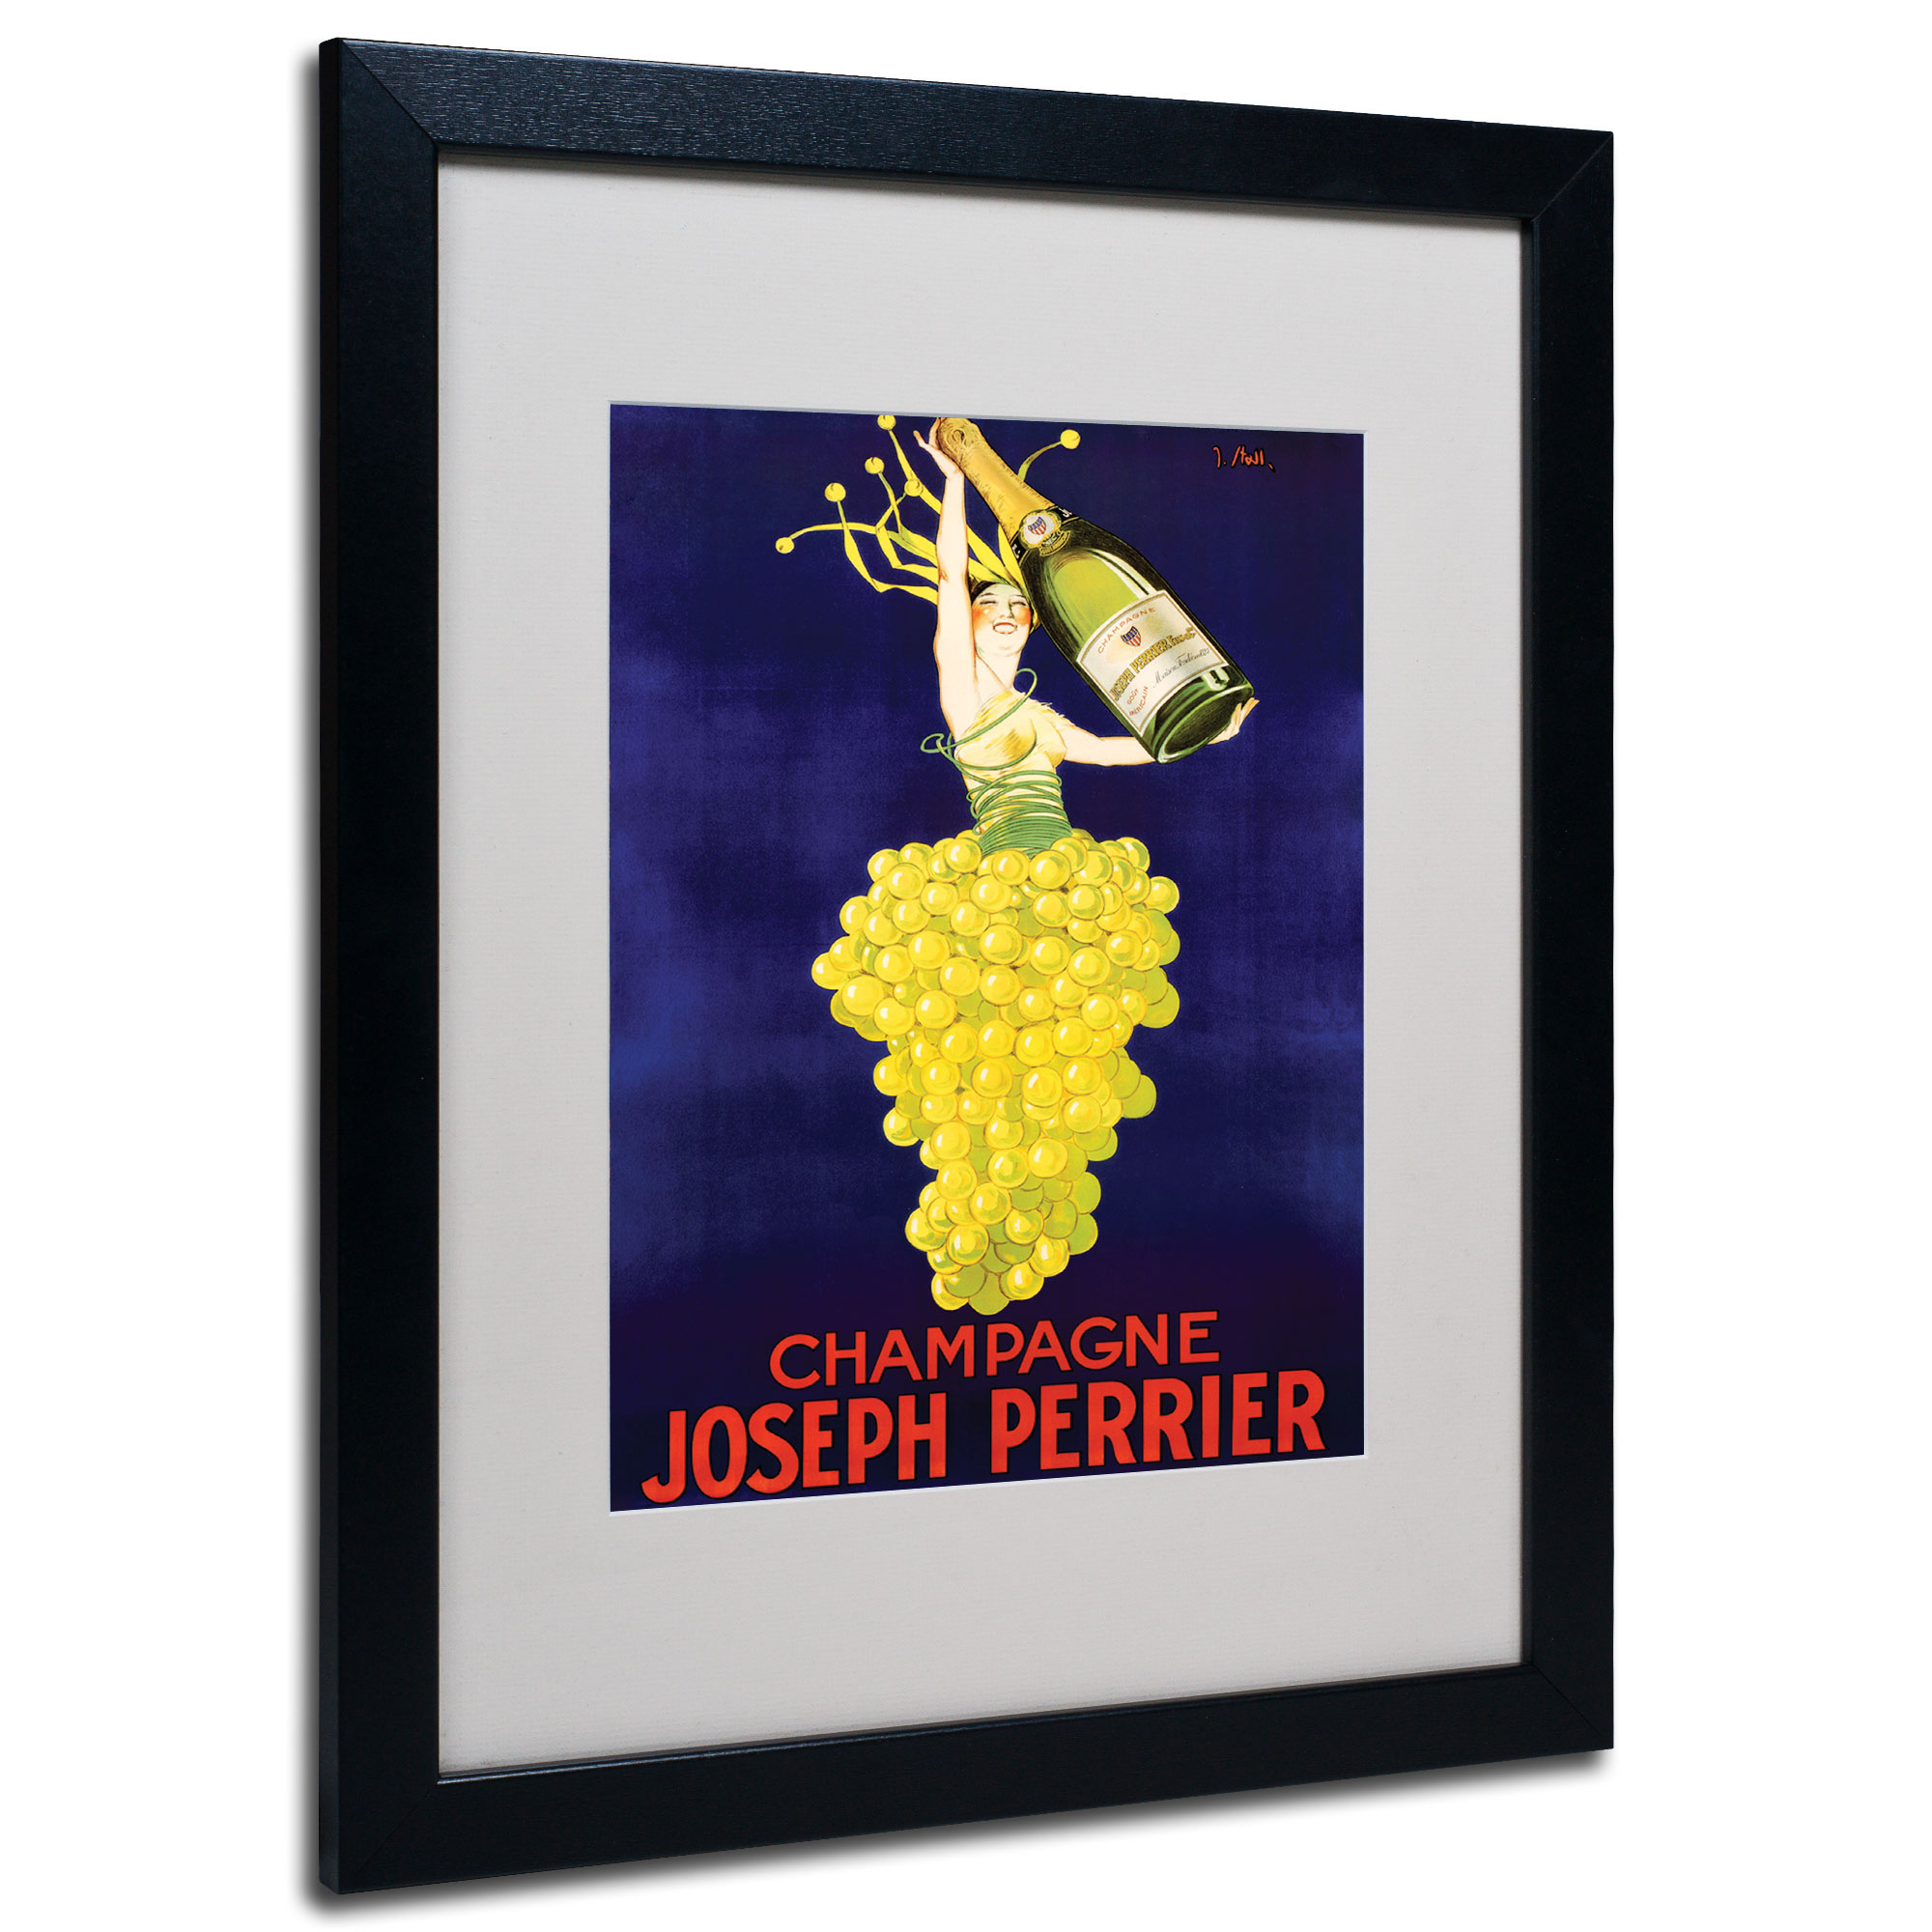 Champagne Joseph Perrier' Black Wooden Framed Art 18 x 22 Inches